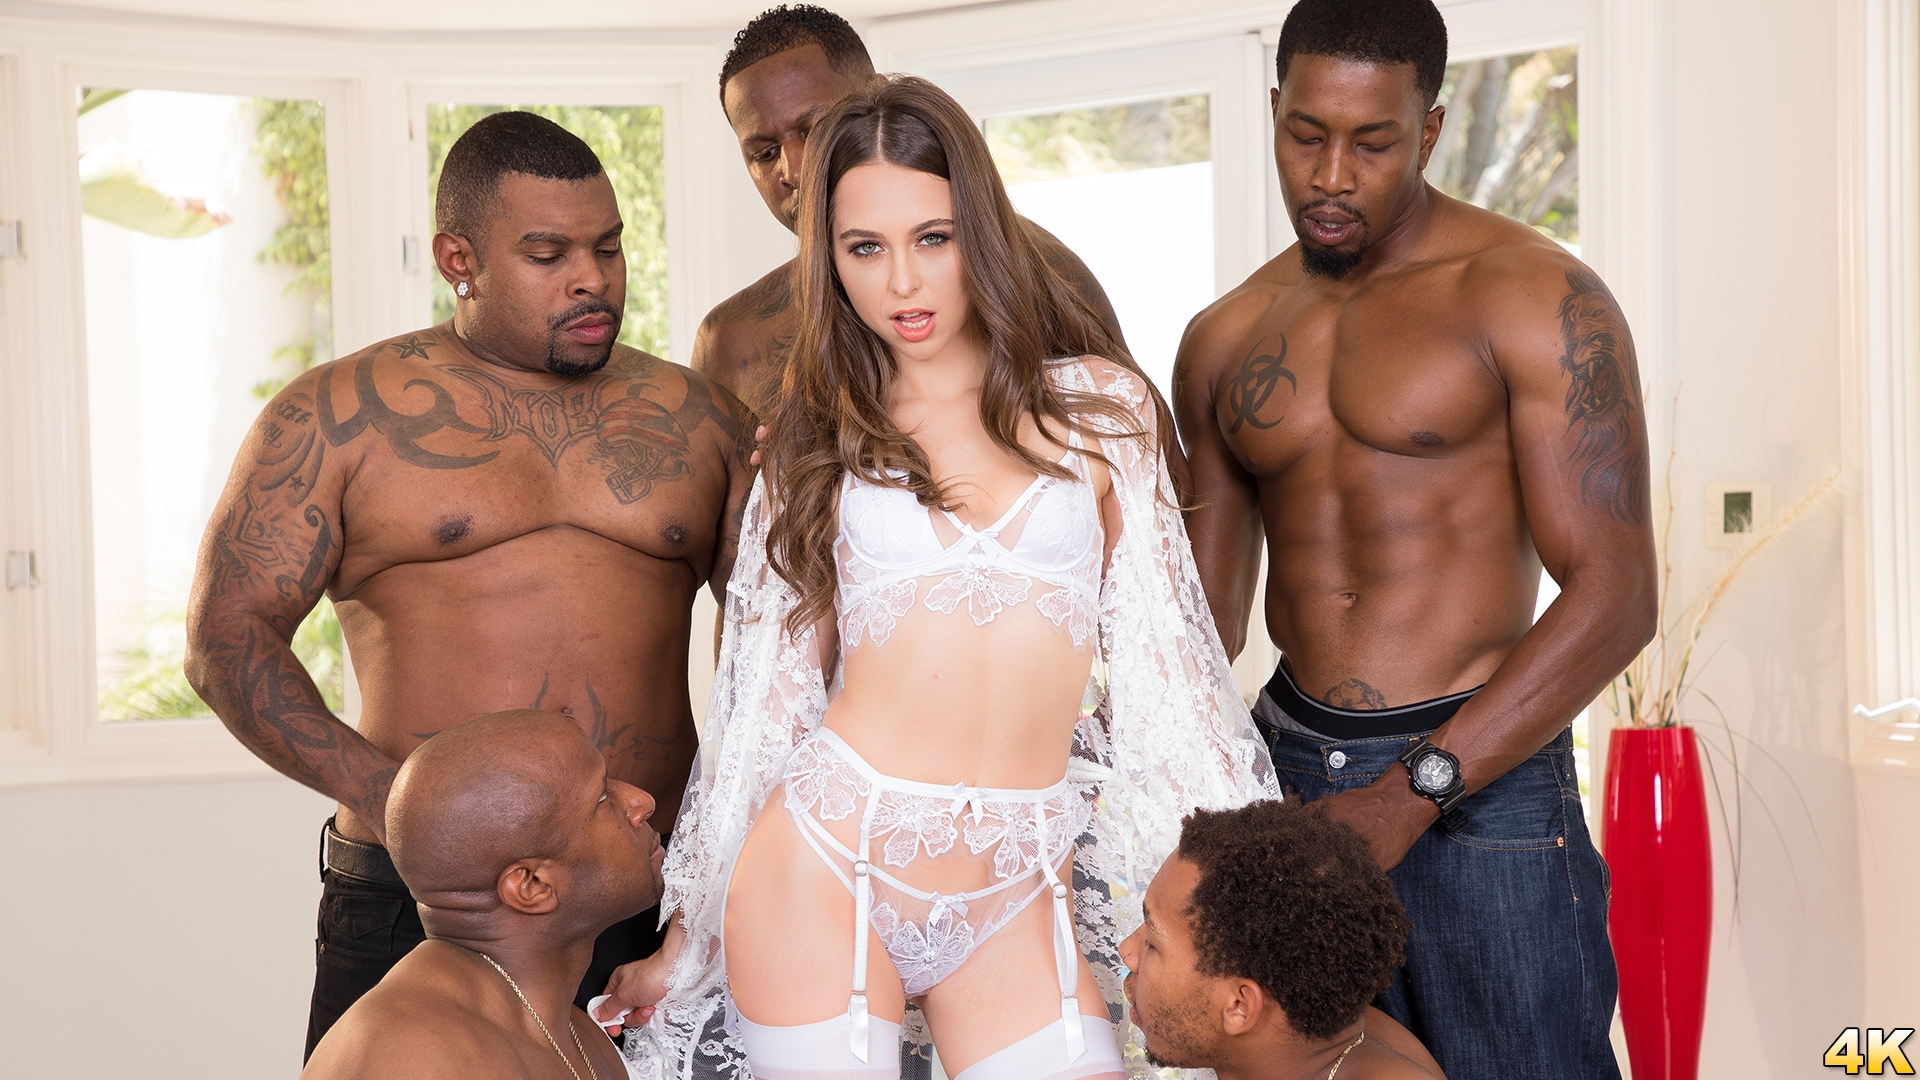 Riley Reid Interracial Gangbang! No Holes Barred! Where Will All Those Big Black Cocks Go?